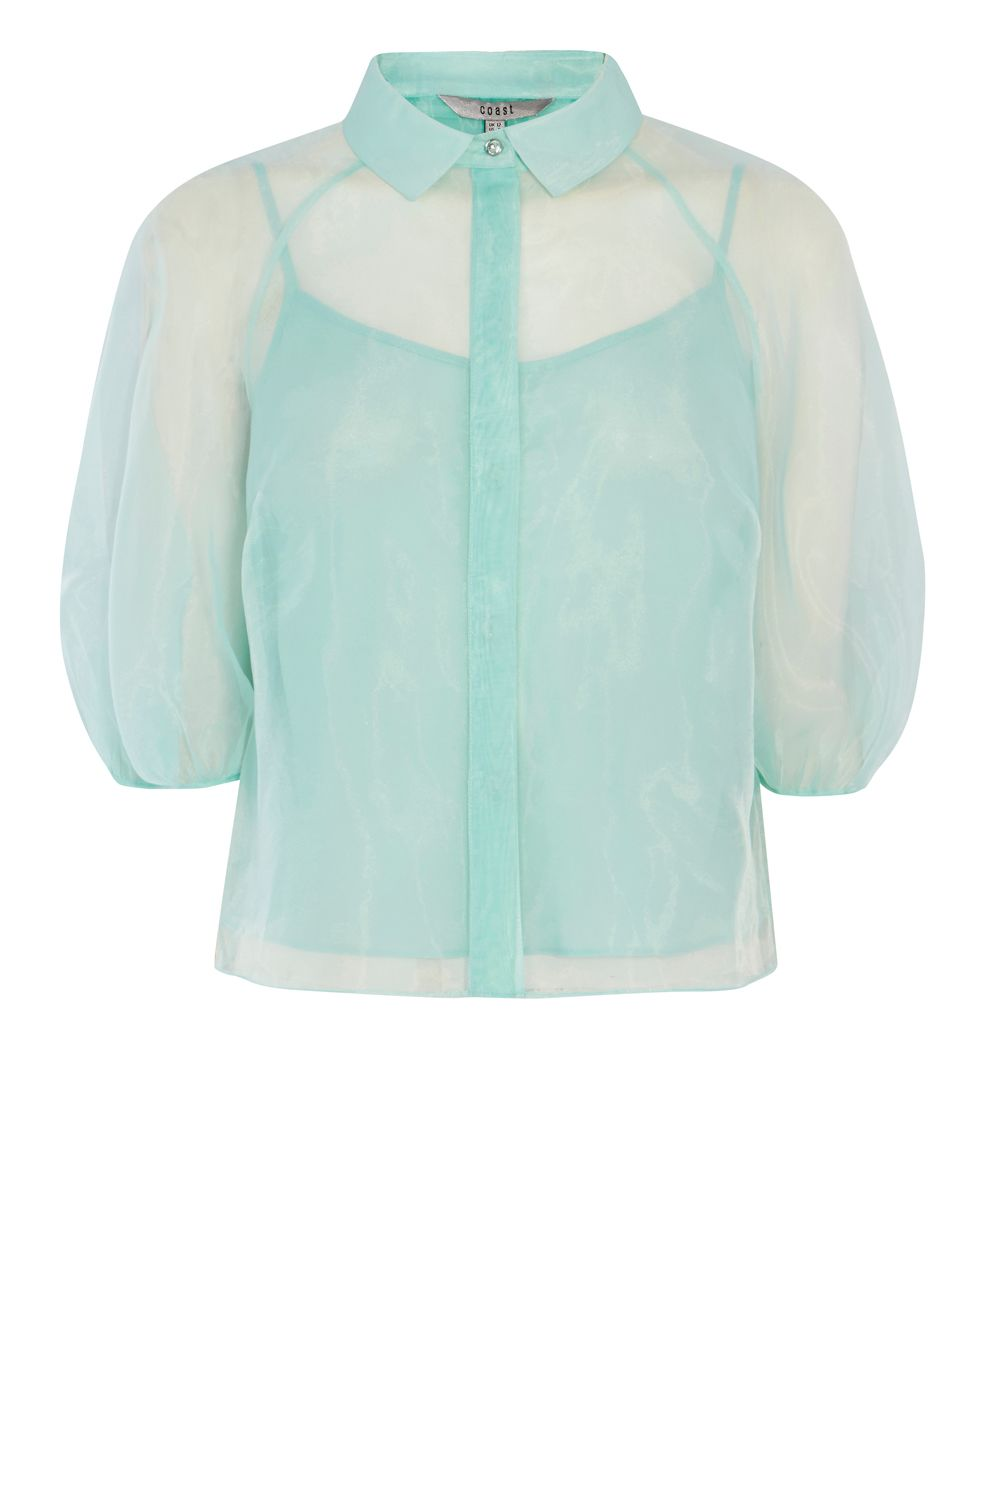 Coast Mya Organza Blouse, Mint